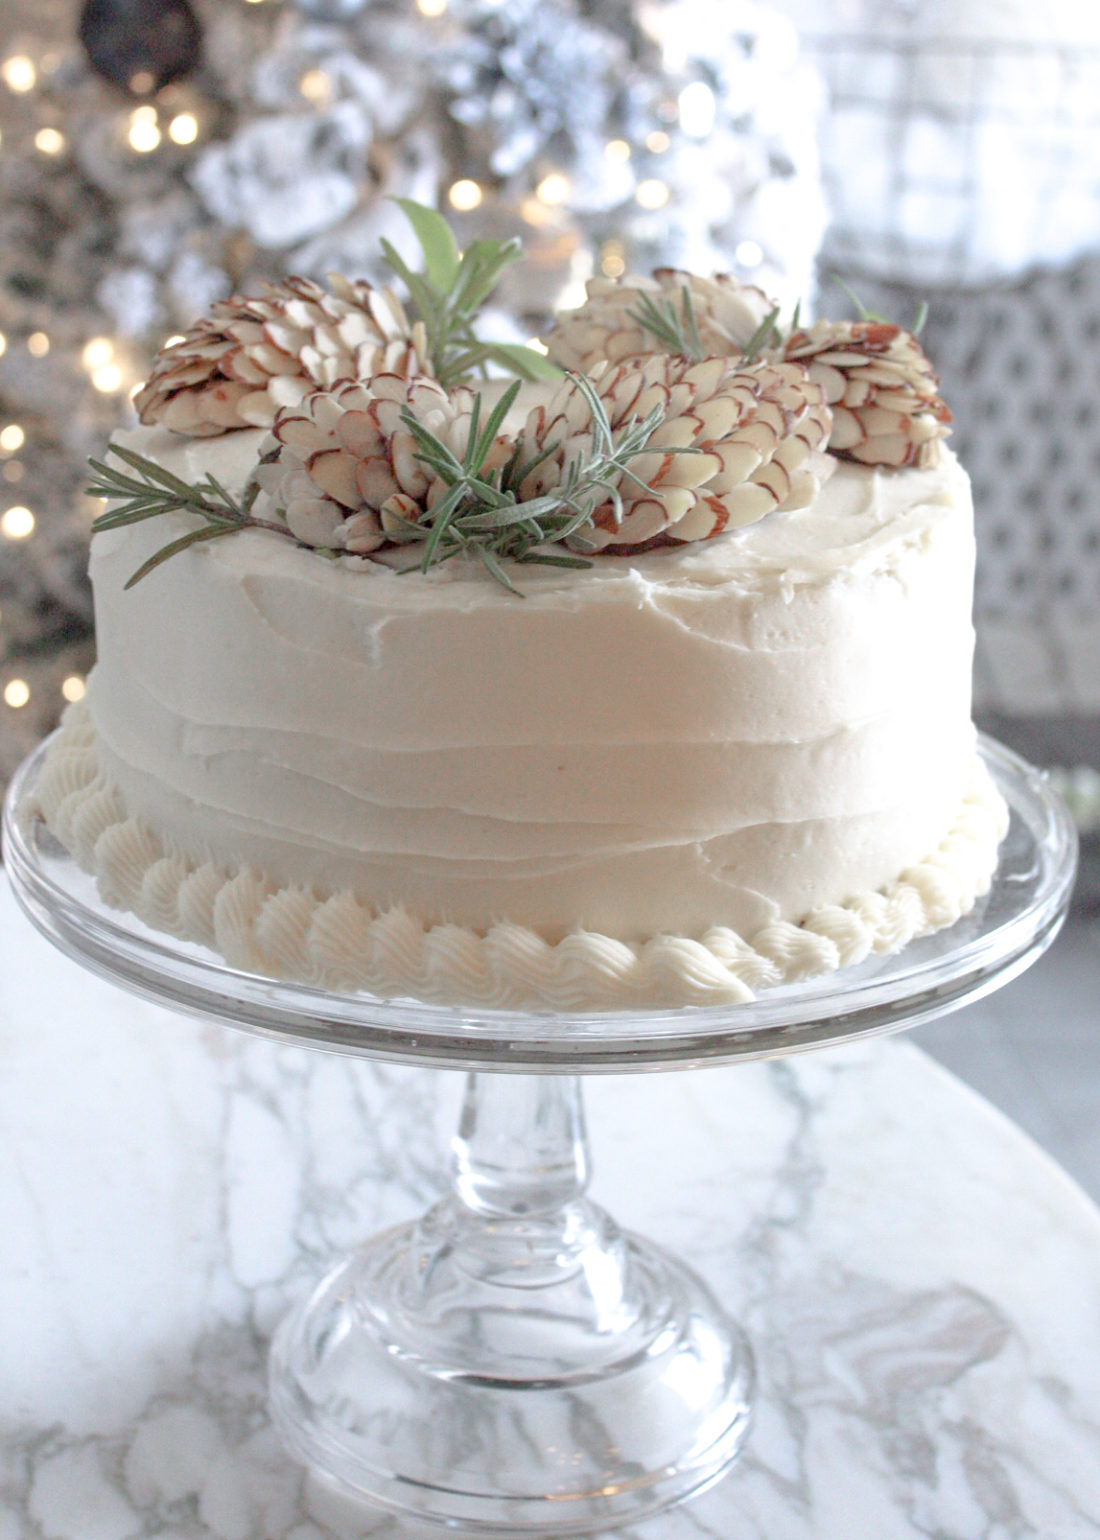 A Pine Cone Cake Creation for Winter Birthdays and Holidays